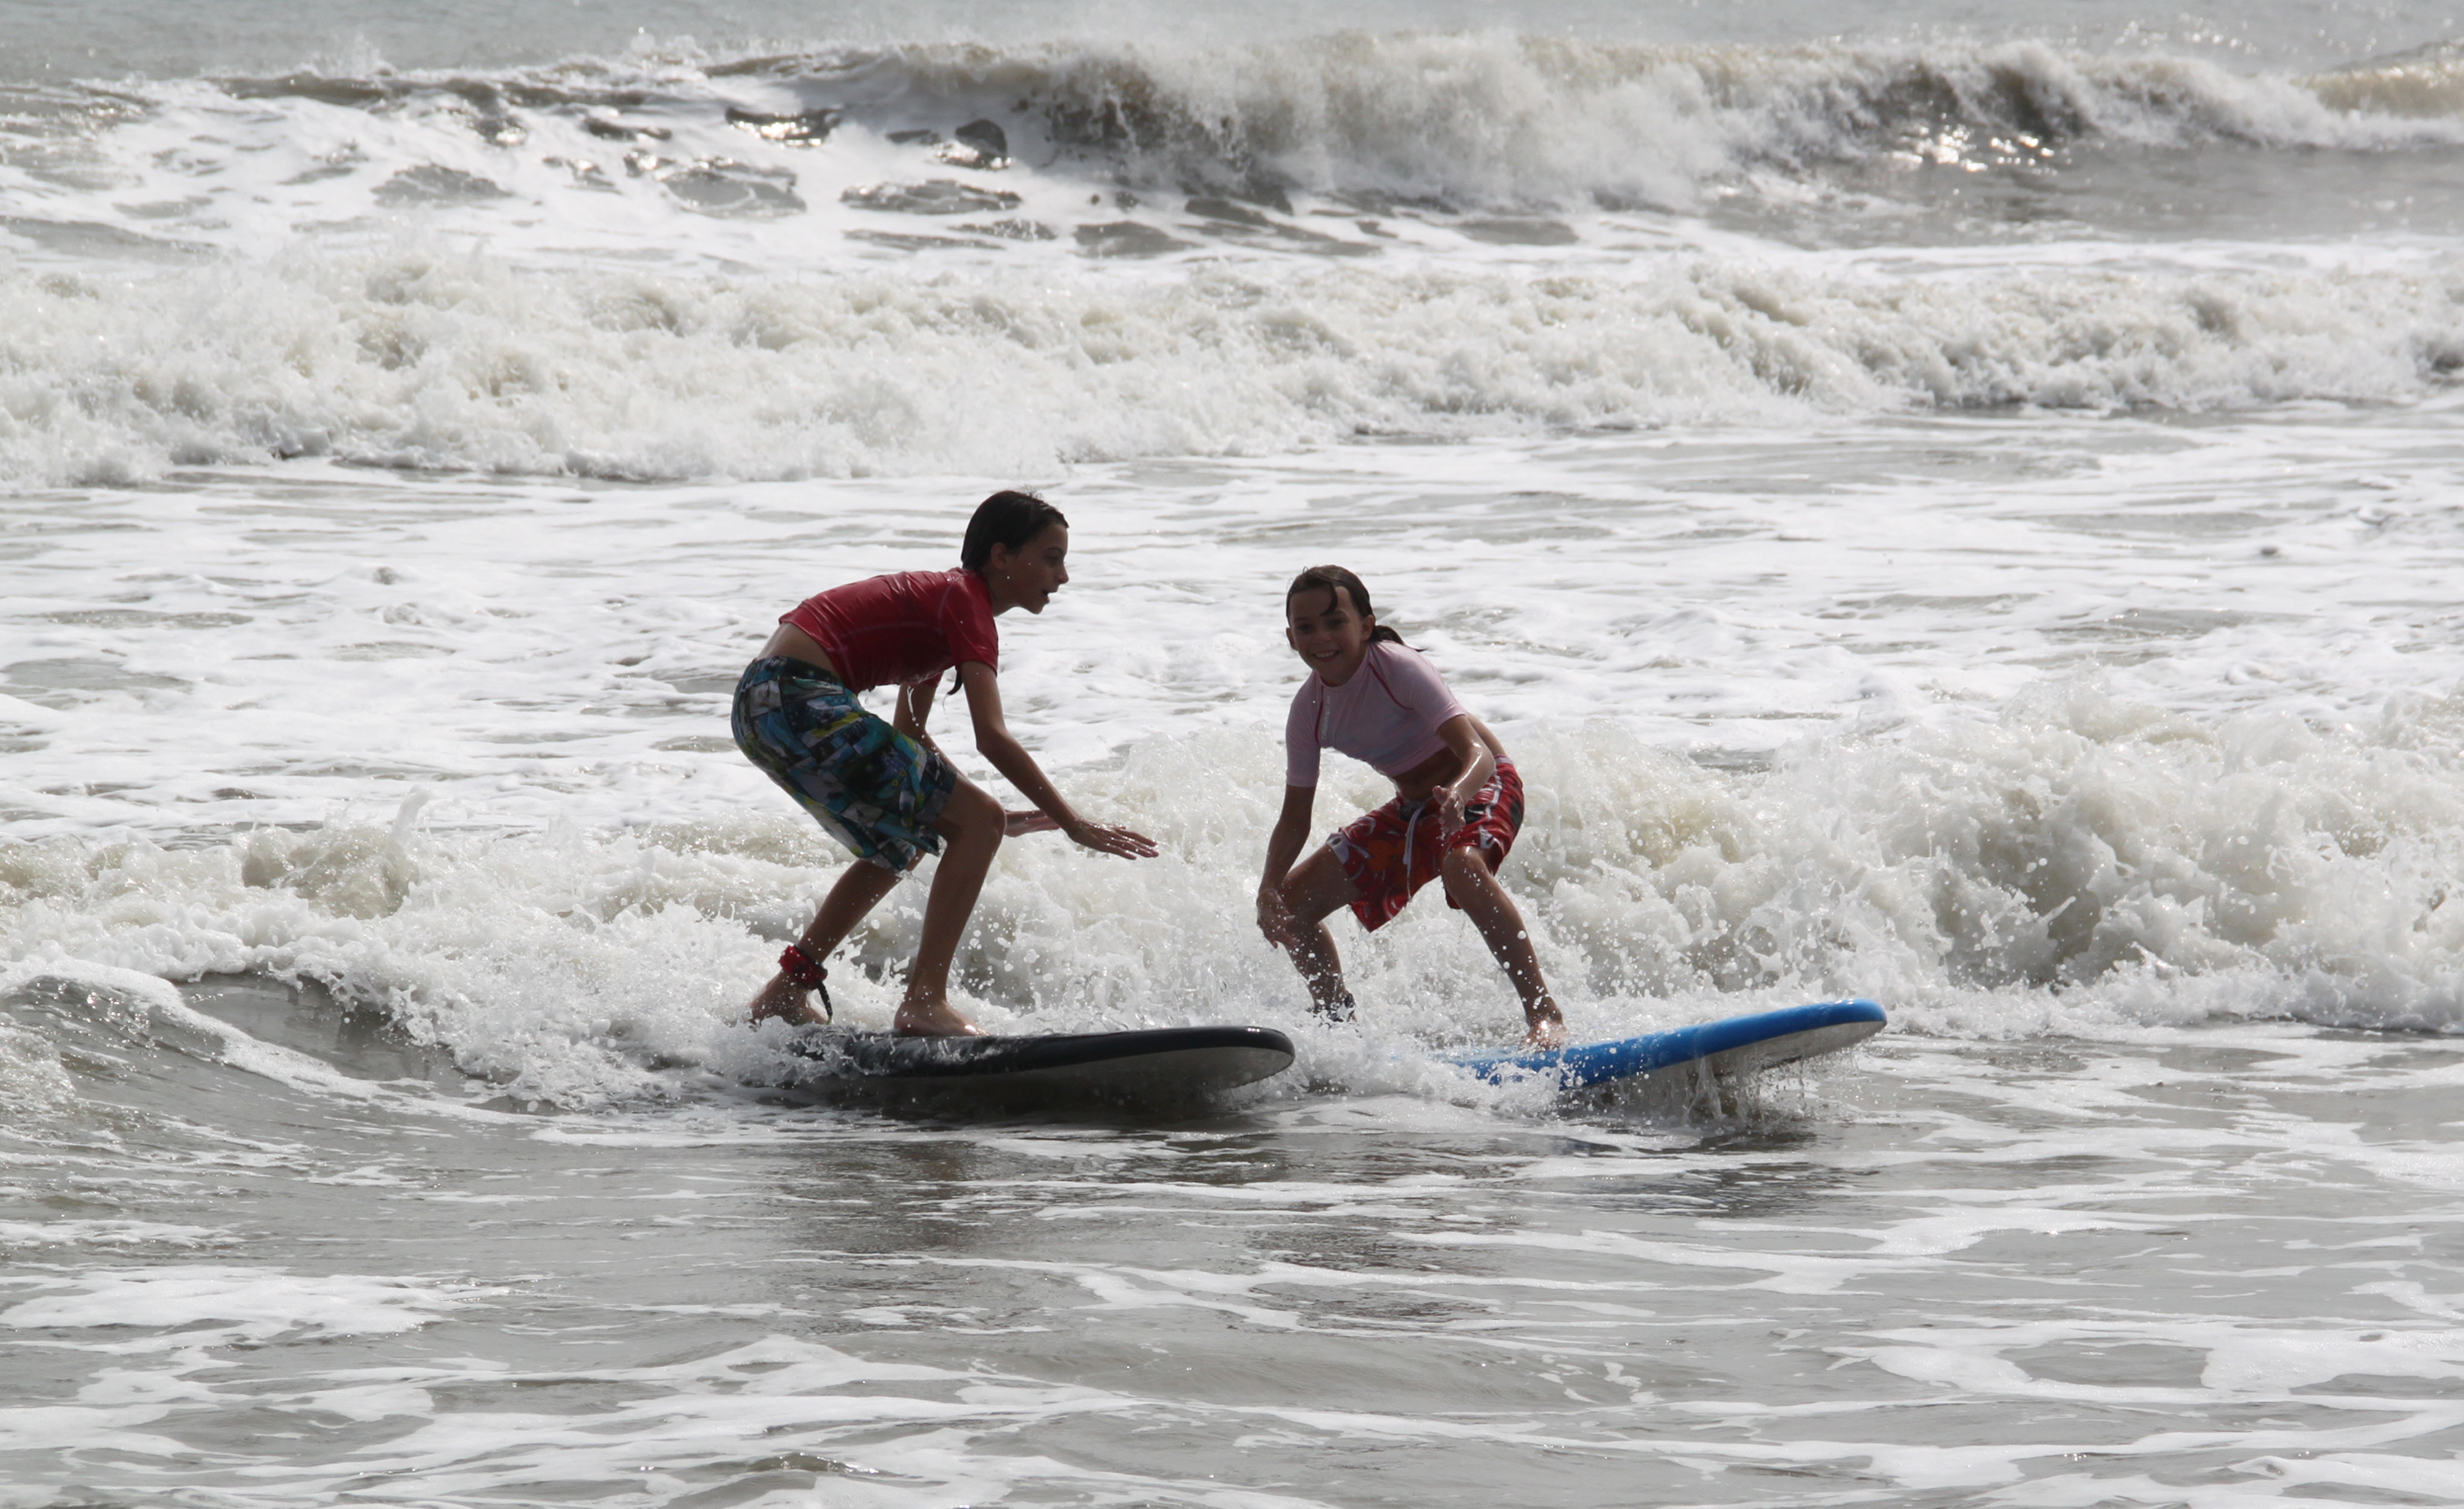 Surfing in India is picking up Photo: Kallialay Surf School